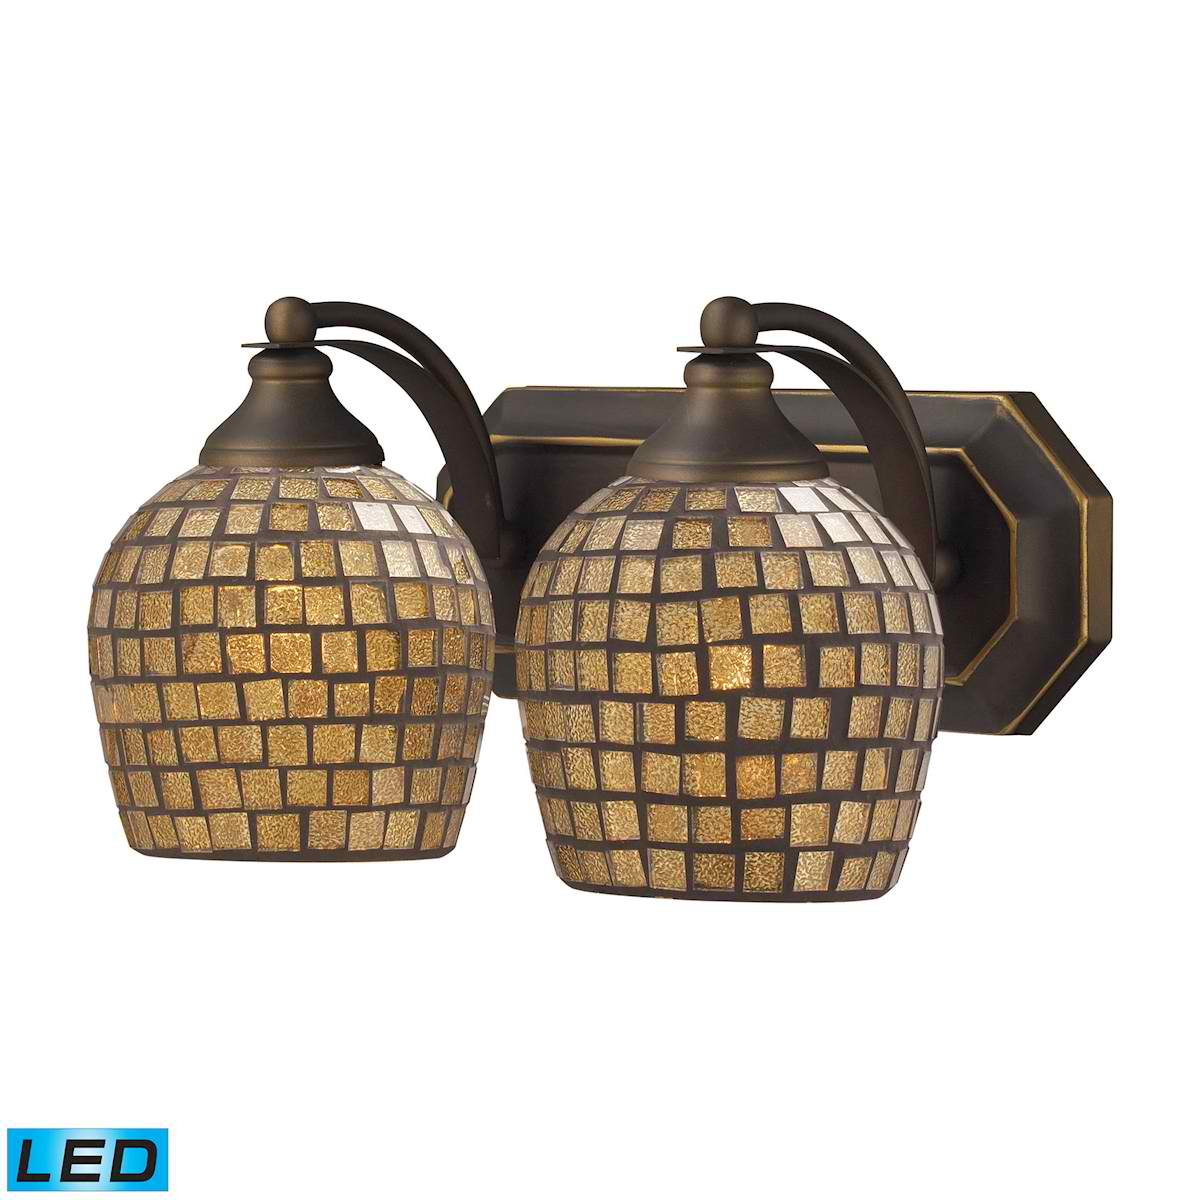 2 Light Vanity in Aged Bronze and Gold Mosaic Glass - LED, 800 Lumens (1600 Lumens Total) with Full Scale